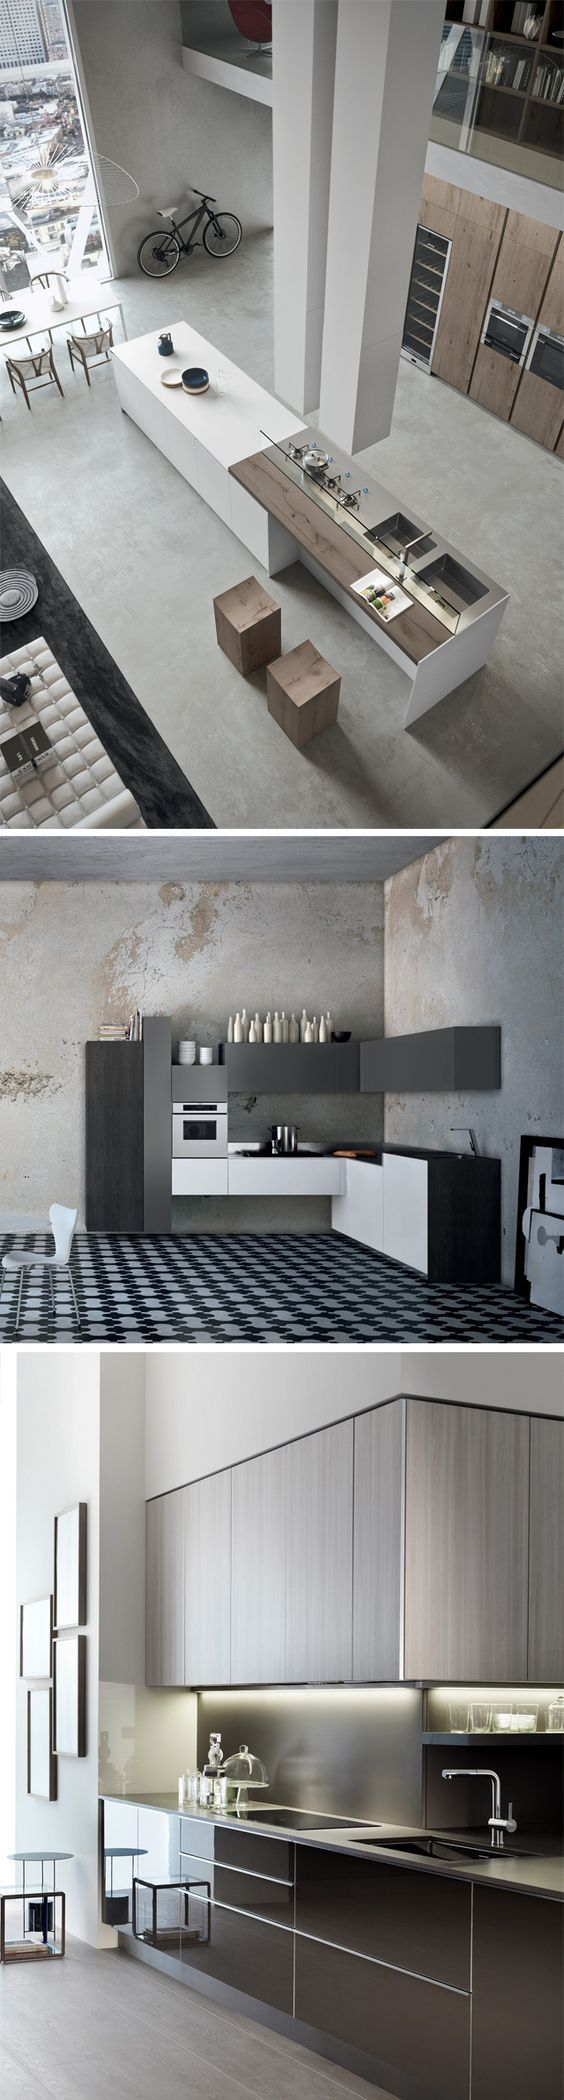 Modern, minimalist and industrial style... 1125 Kitchen Design Ideas to inspire you! #kitchens #interiors #design: